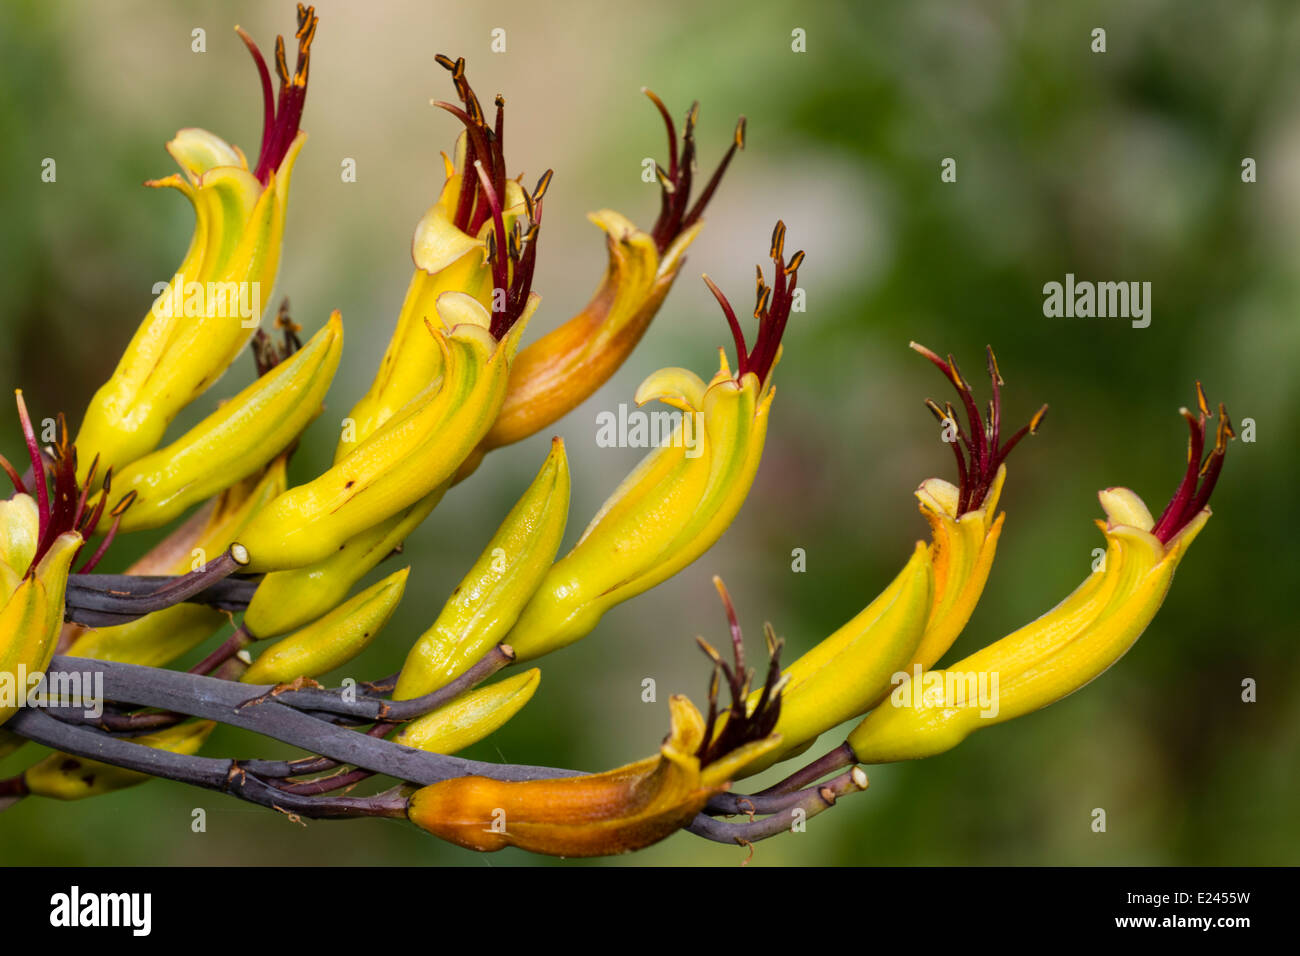 Flowers of the New Zealand flax, Phormium cookianum 'Tricolor' - Stock Image